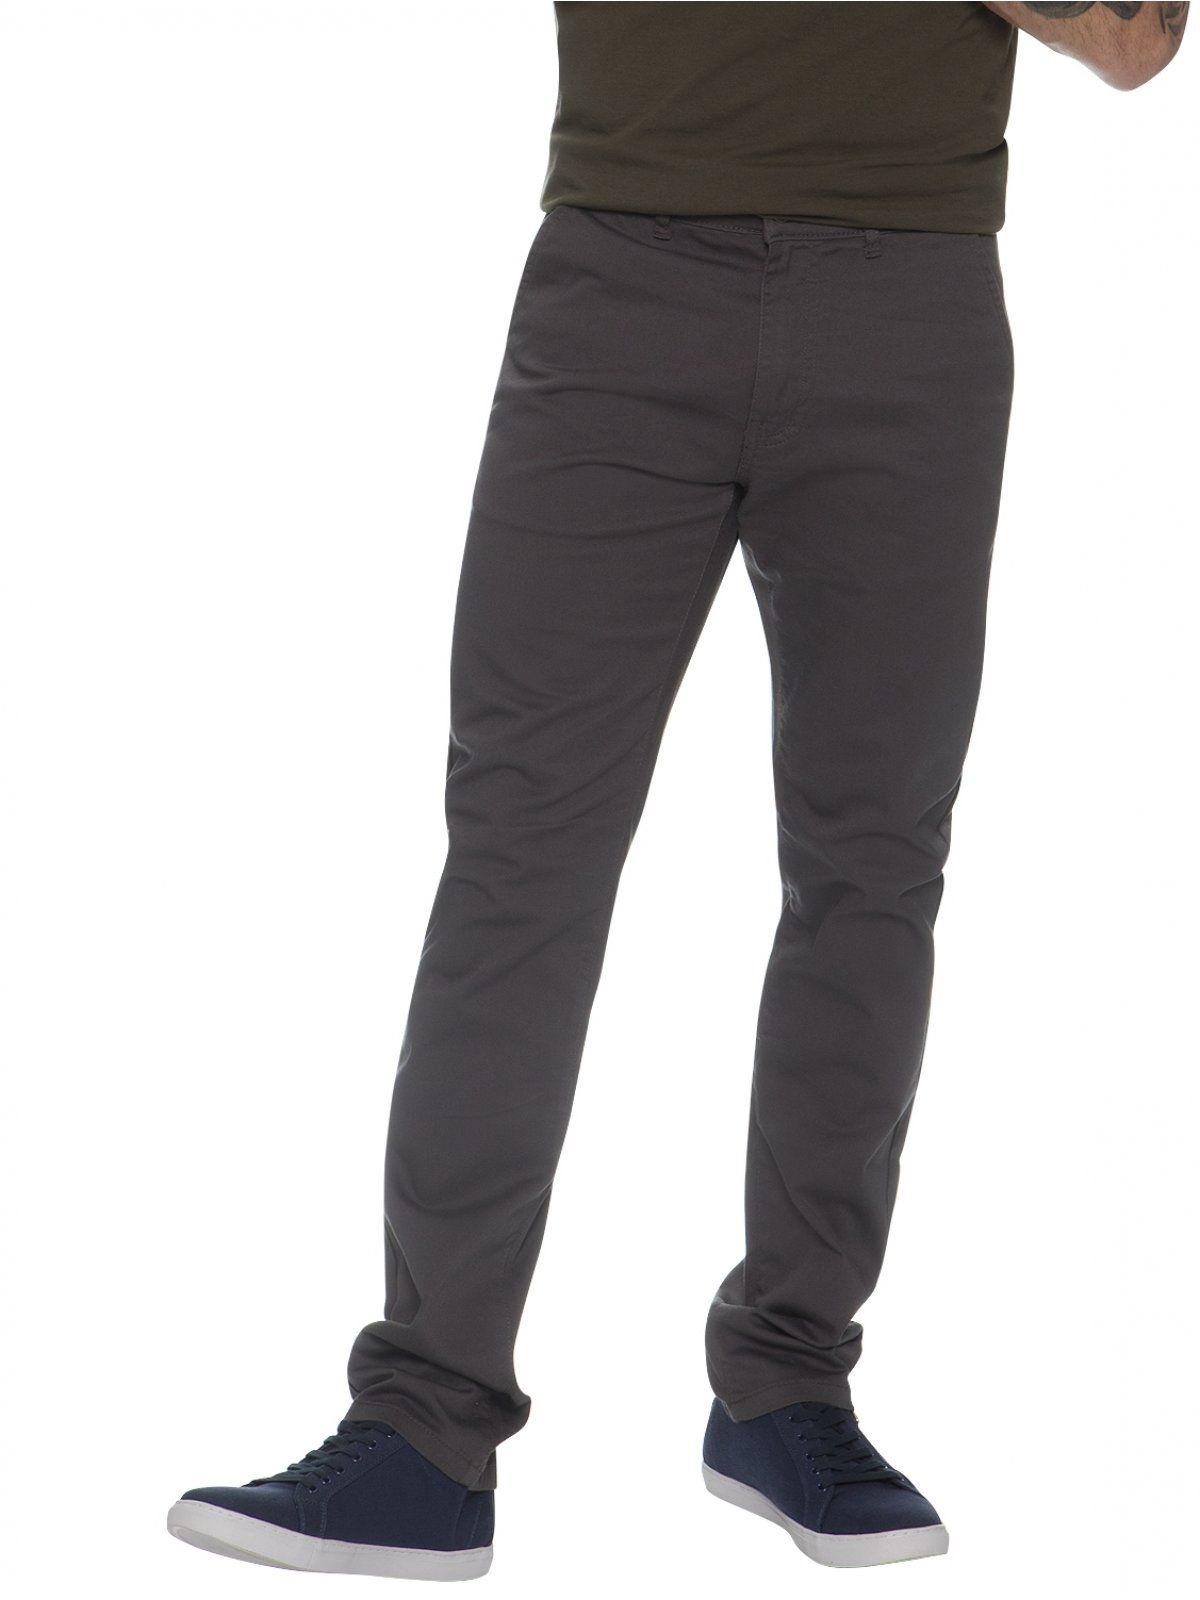 Enzo Men's Chinos Slim Fit Stretch Jeans